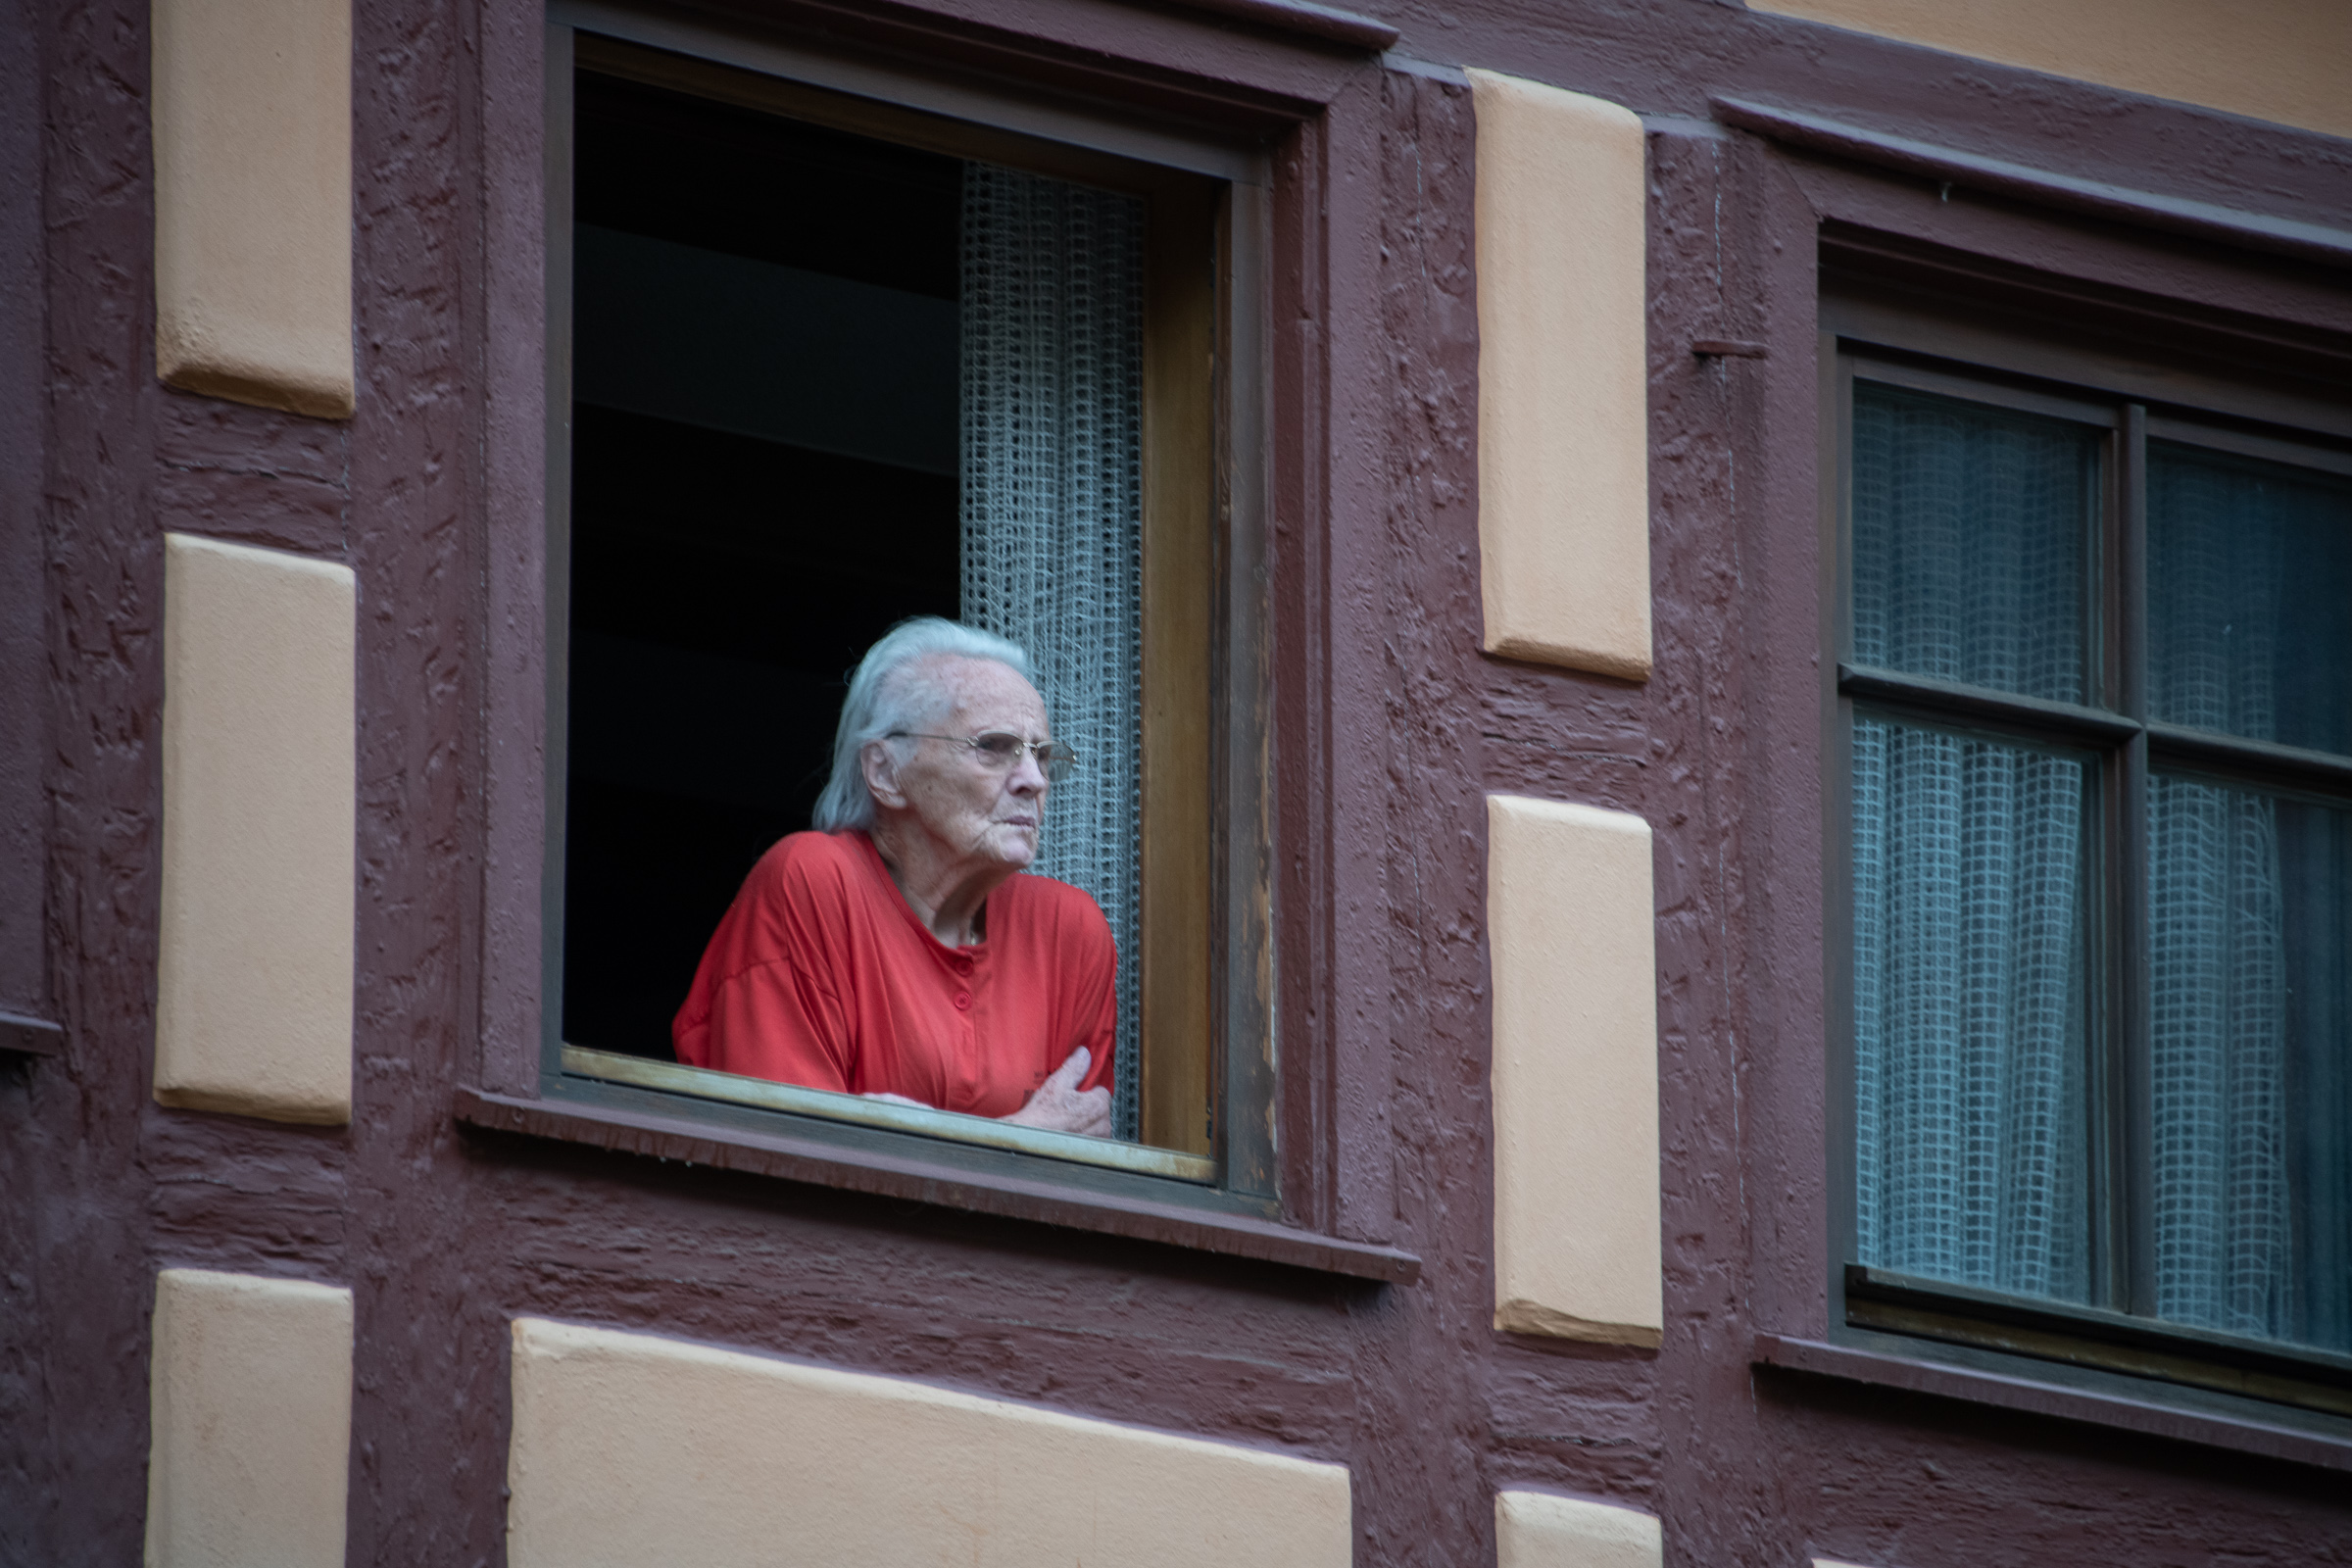 Like the watchtowers of old, this lady sat in her window watching the tourists